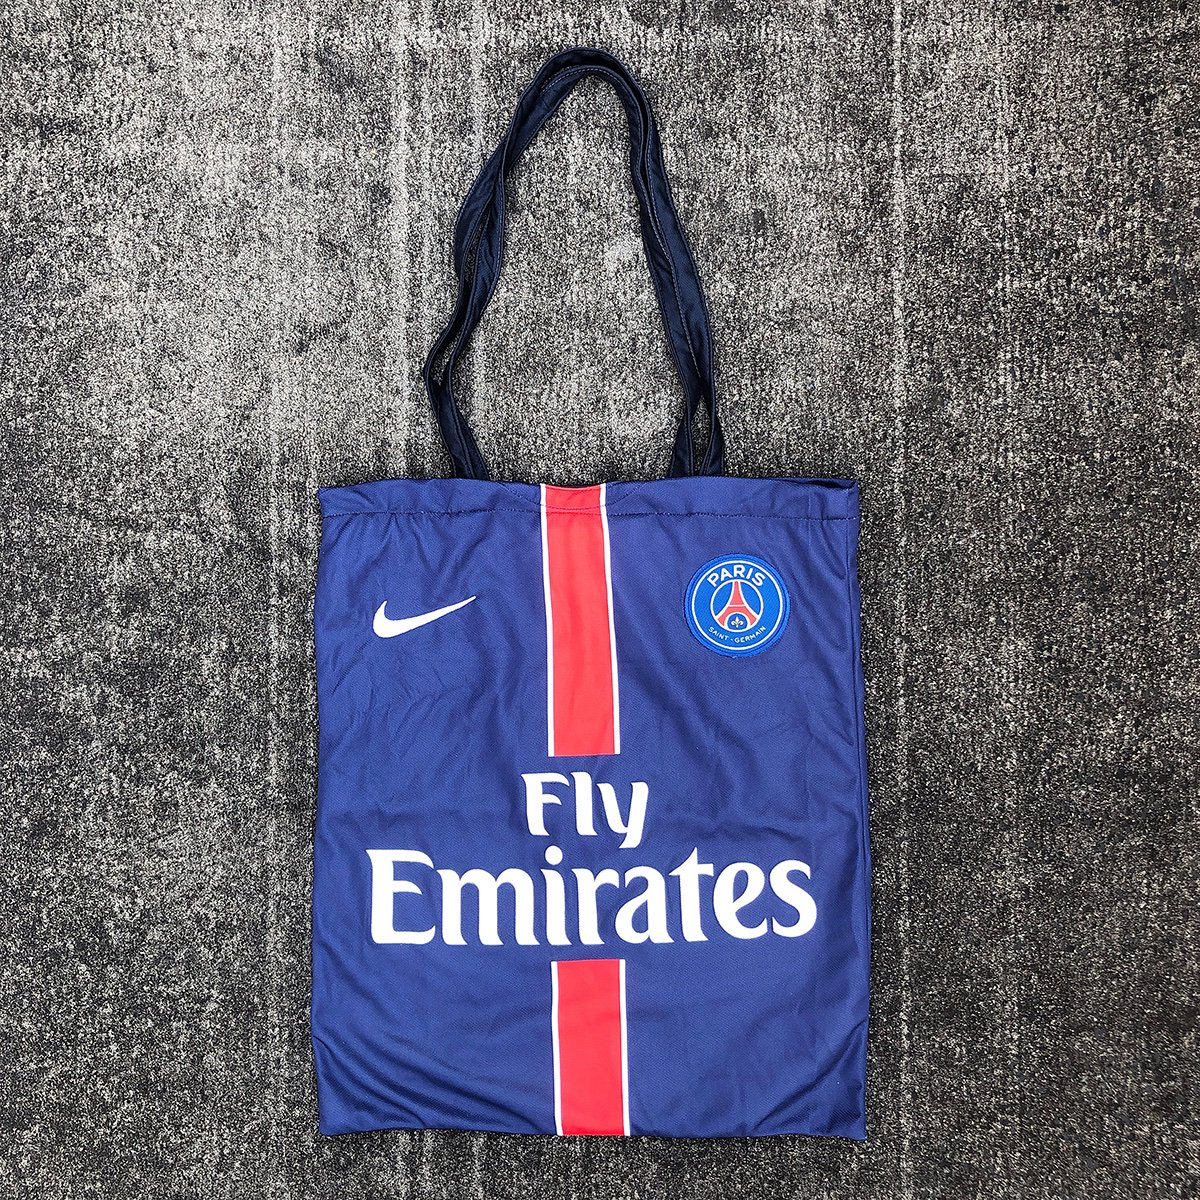 Coming soon. ♻️🇫🇷 #PSG